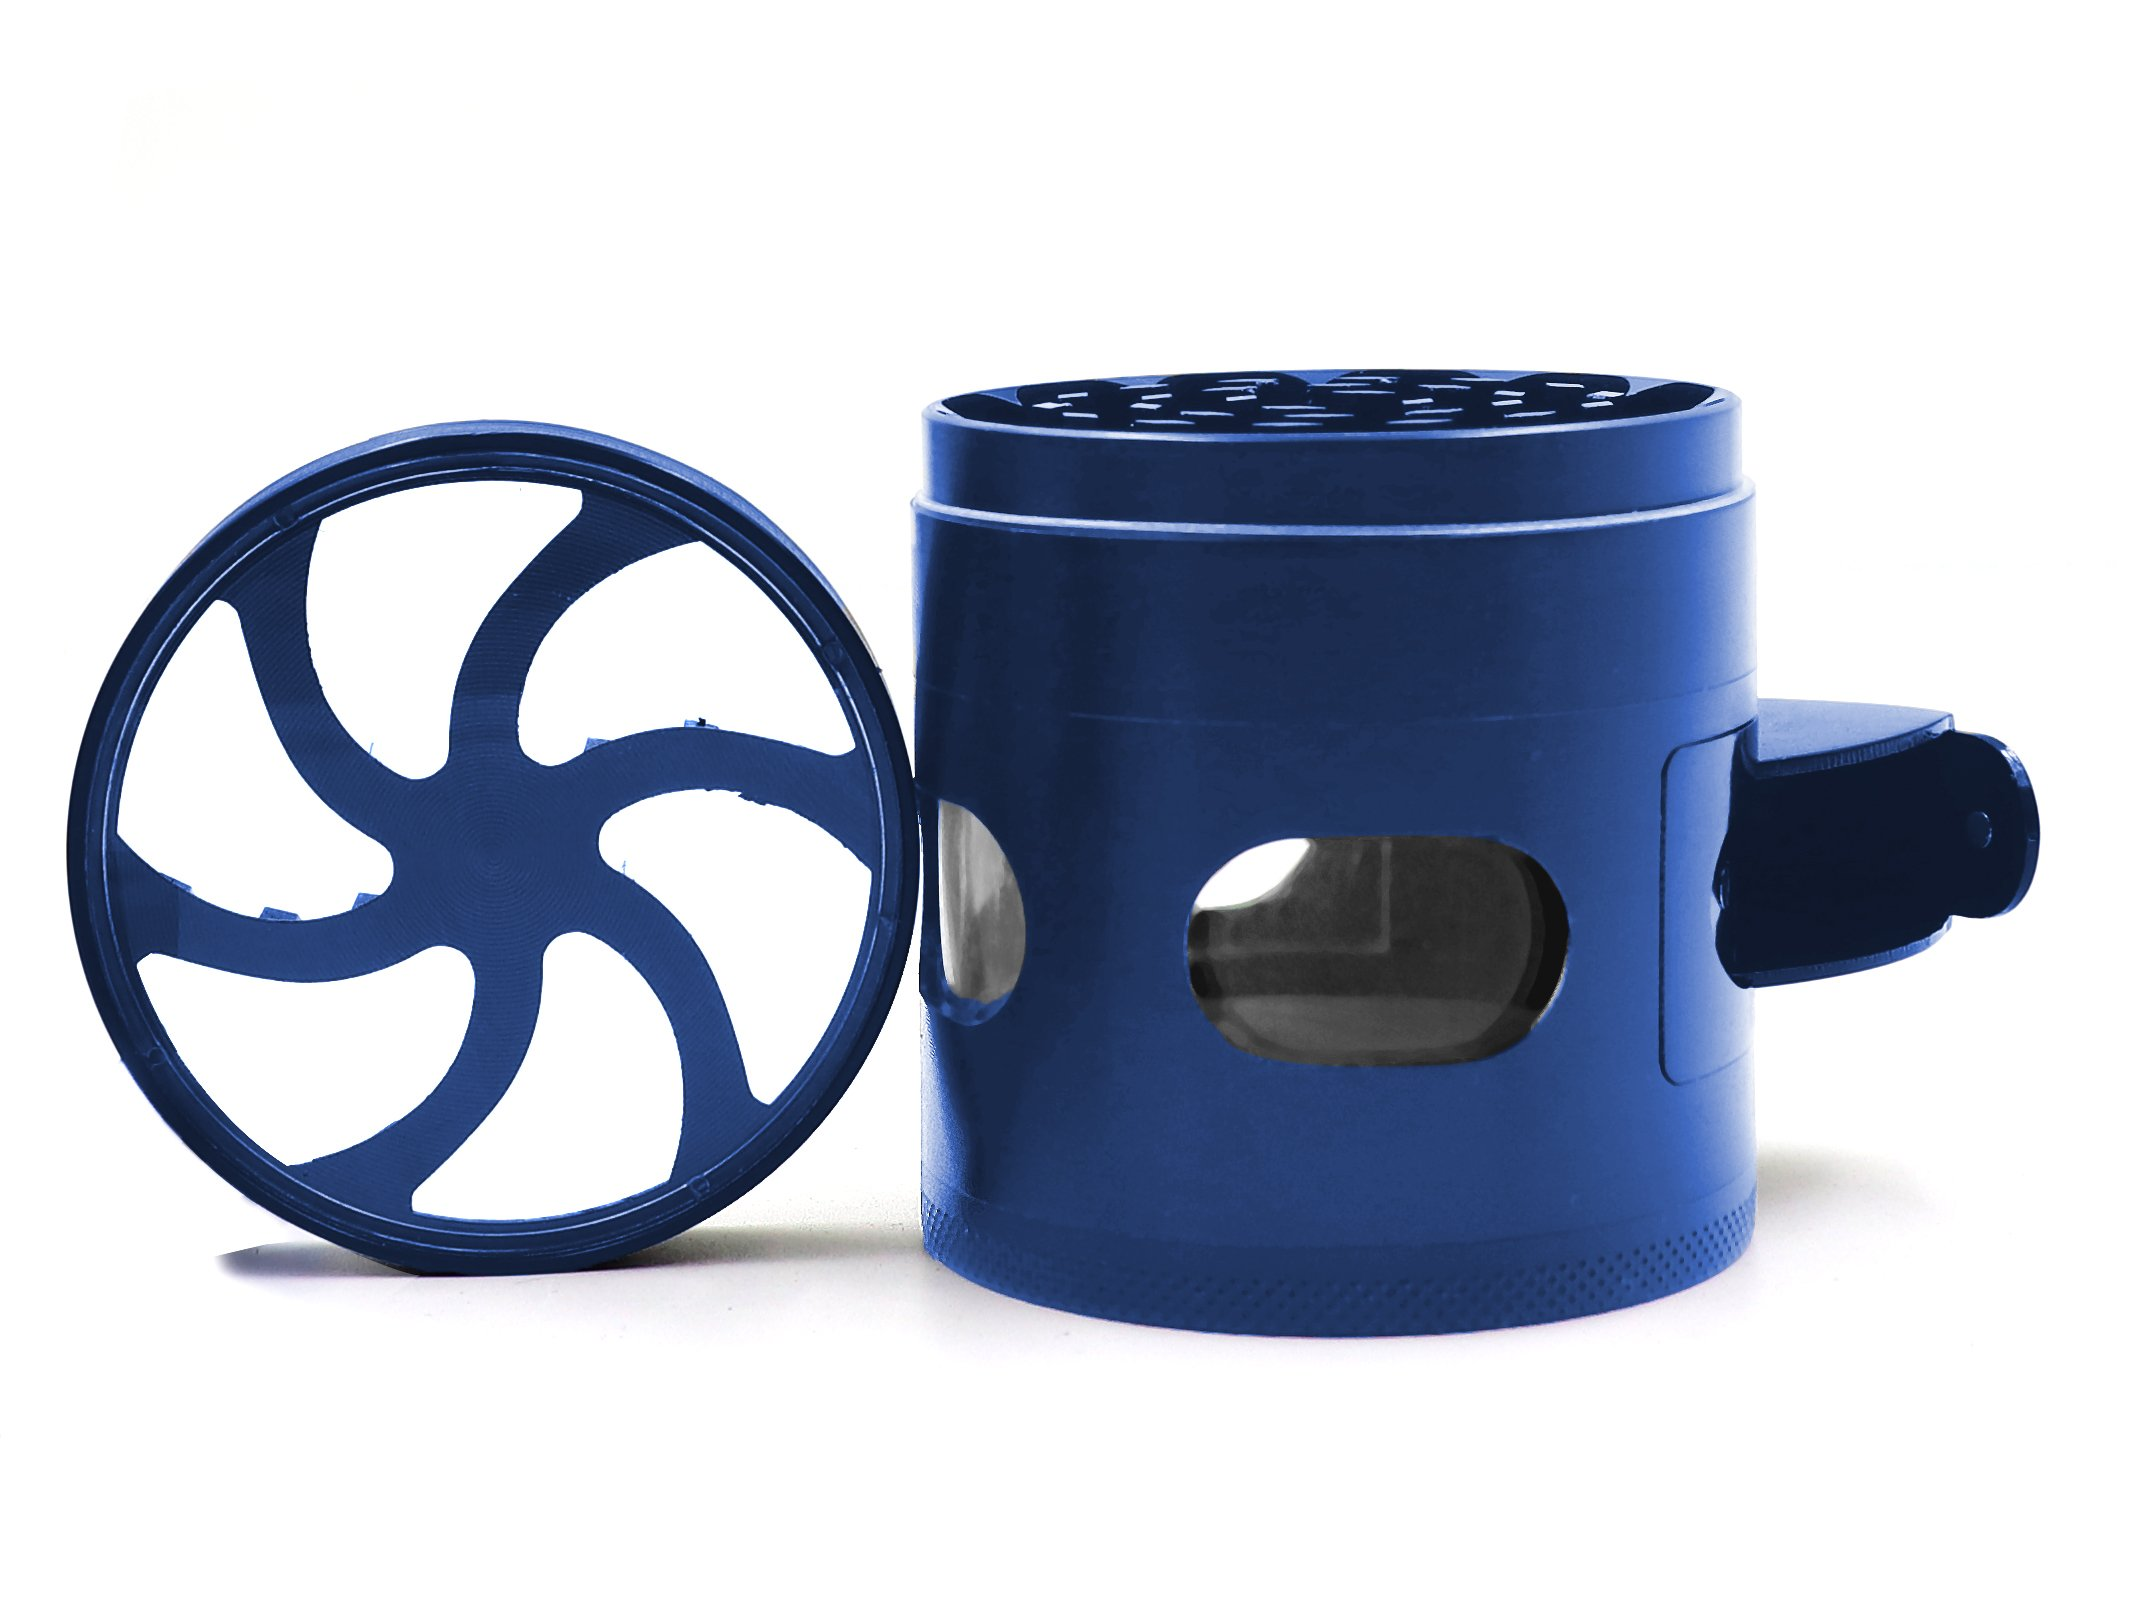 AIMAKE New Design Herb Weed& Spice 4 Piece Large 2.5 Inches Flash Windows Mills Grinder with Pollen Catcher(Blue) by aiMaKE (Image #1)